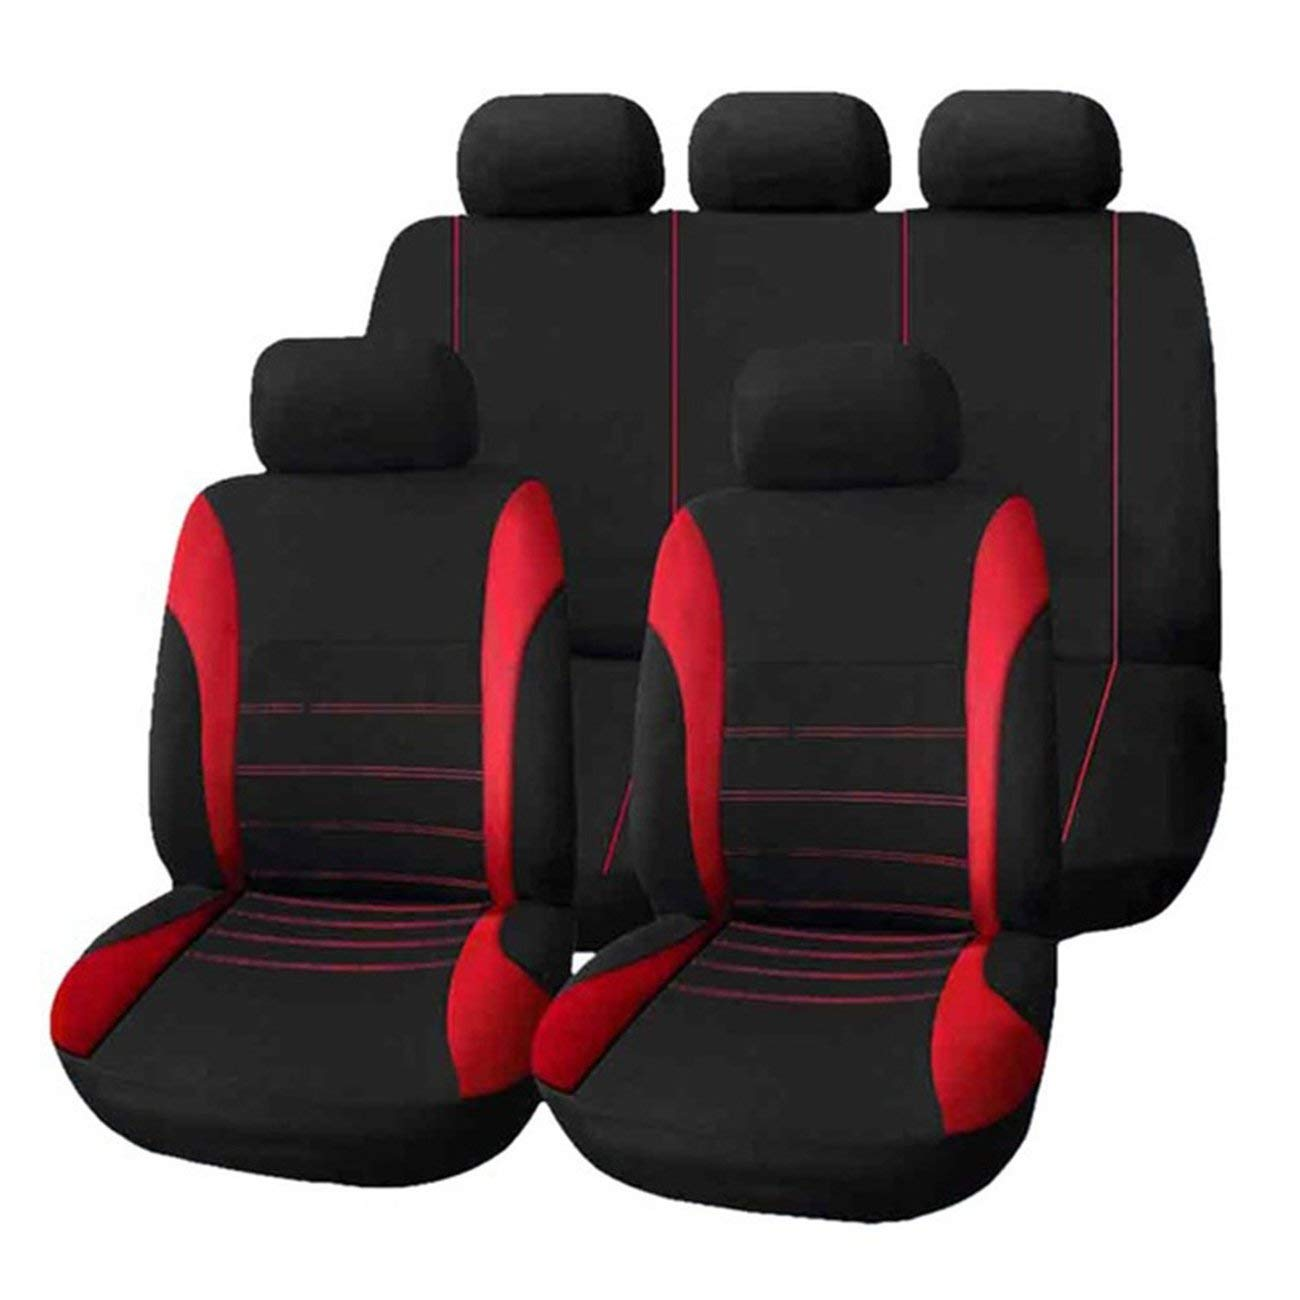 red 9pcs//Set Car Seat Cover Comfortable Dustproof Seat Protectors Pad Cover Universal Full Seat Covers for Vehicle Cars Panda